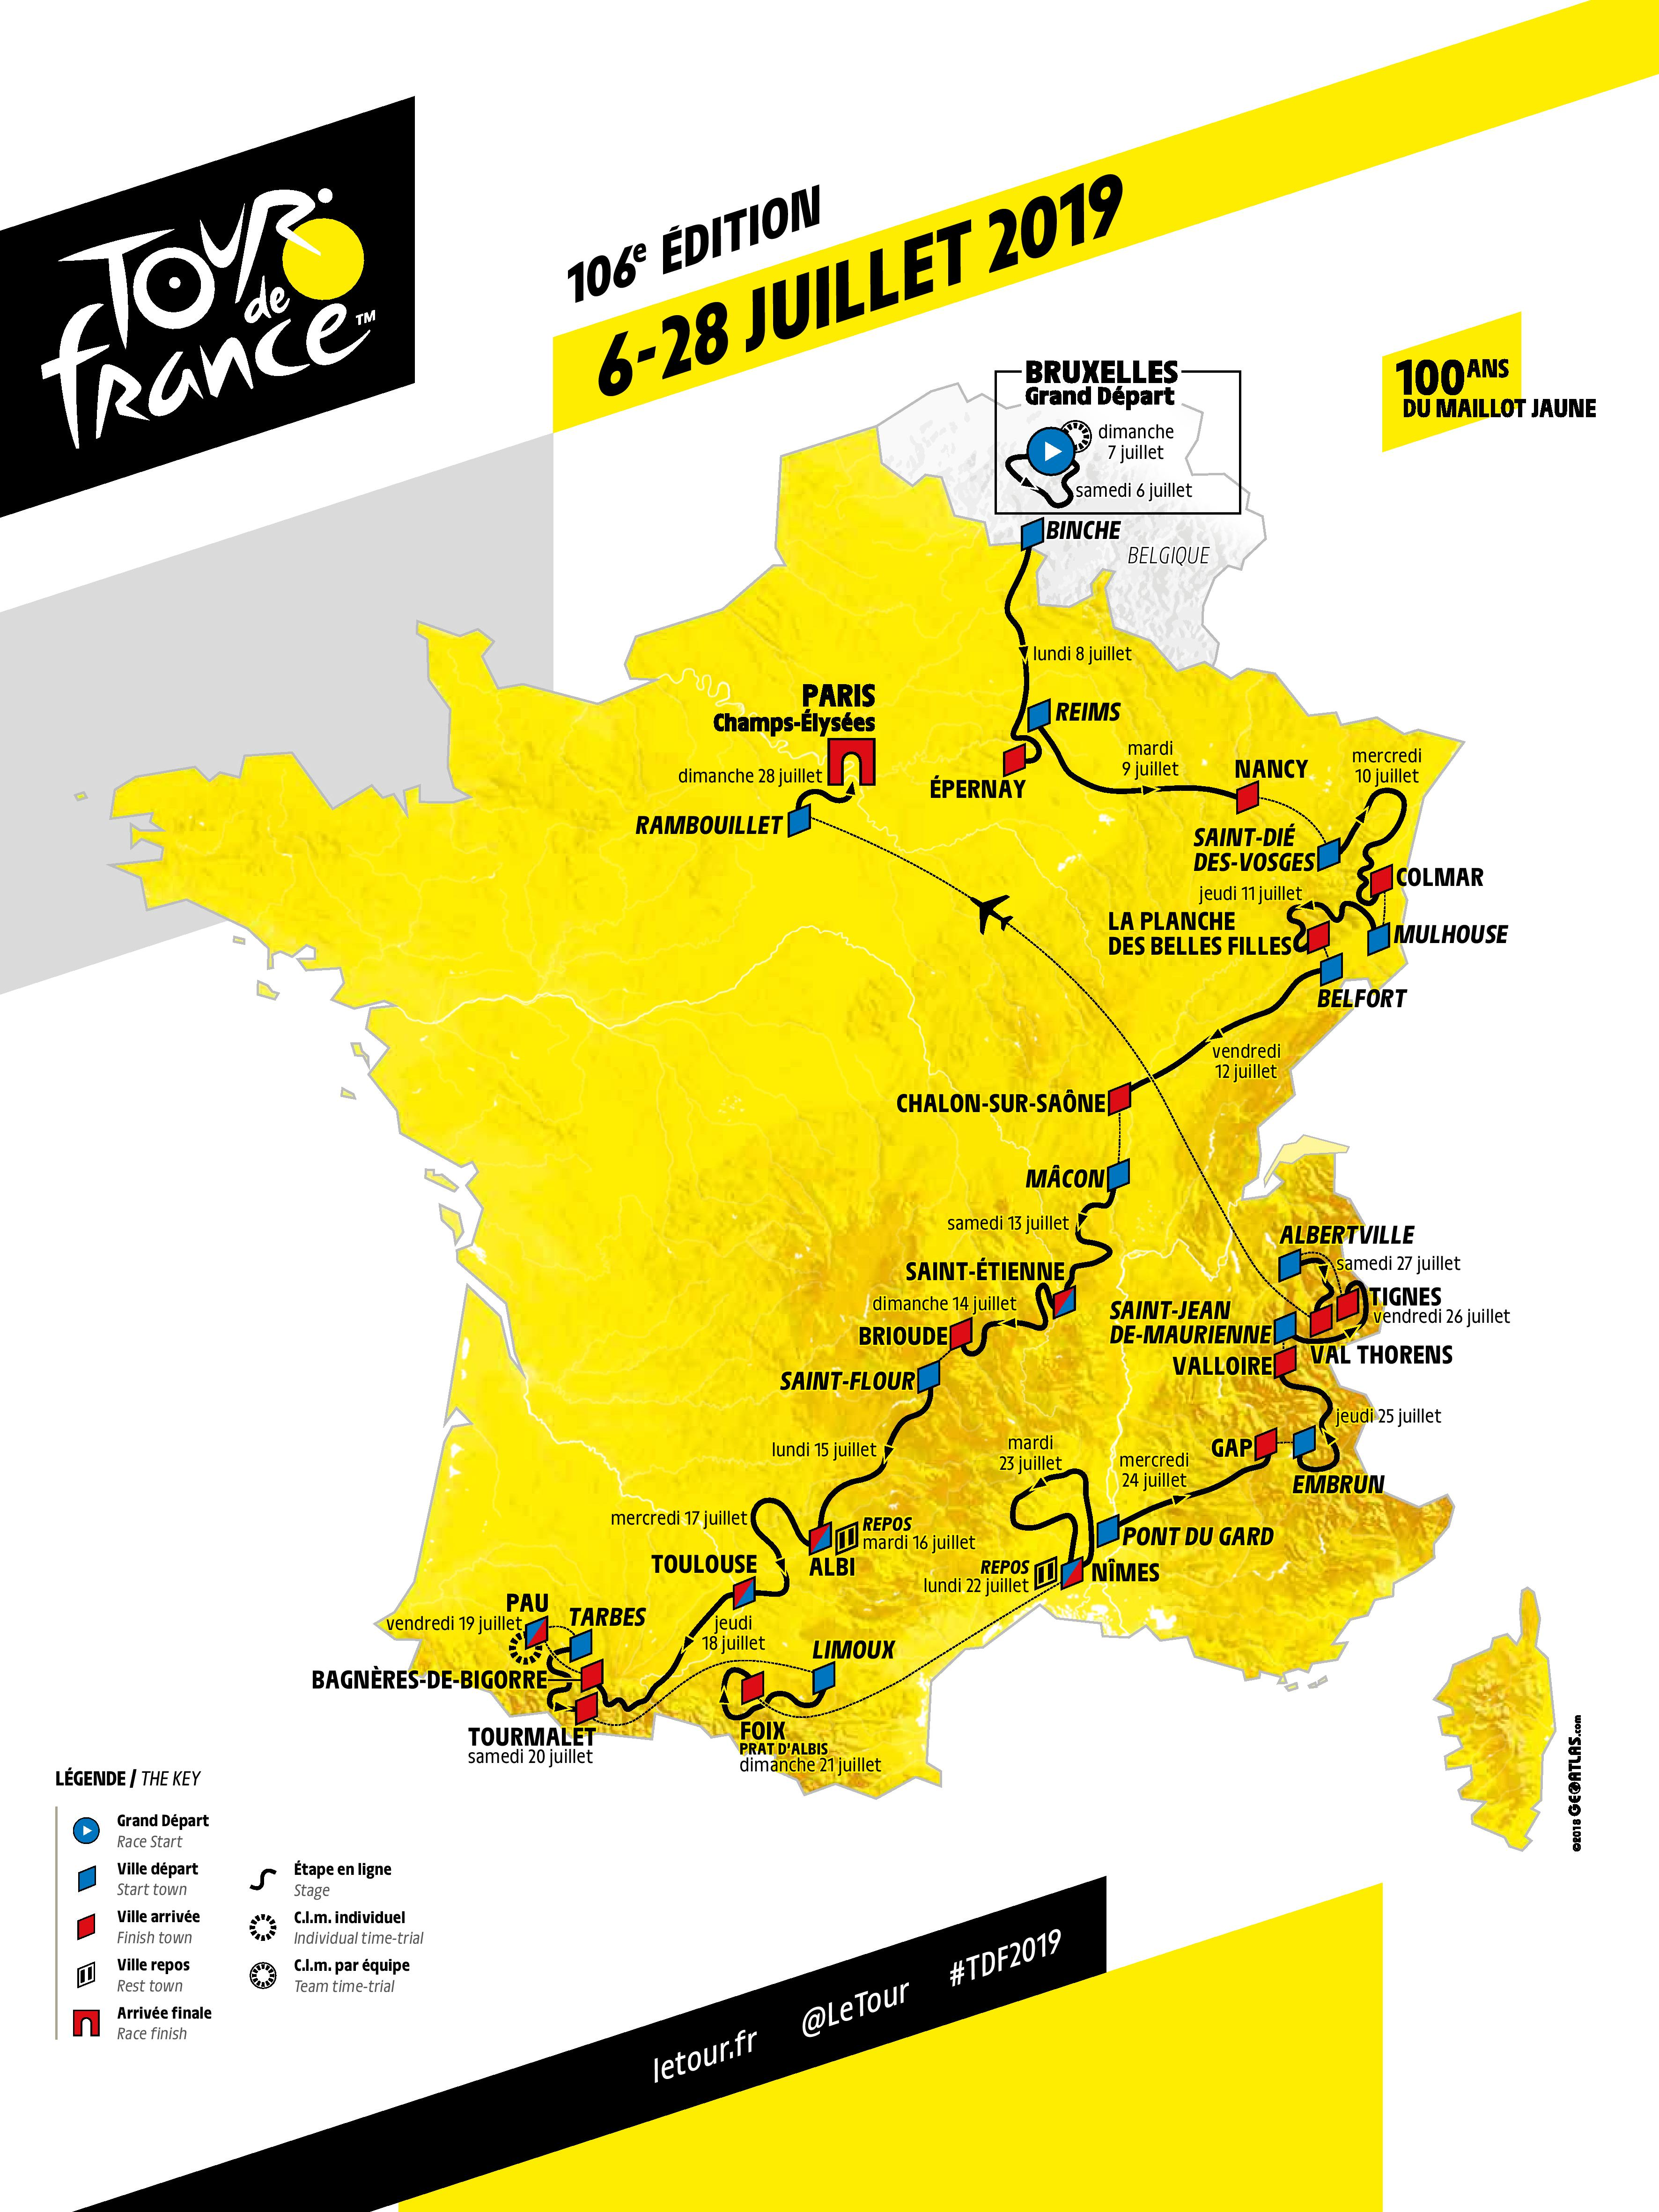 parcours prize money sponsors le tour de france 2019 se d voile. Black Bedroom Furniture Sets. Home Design Ideas